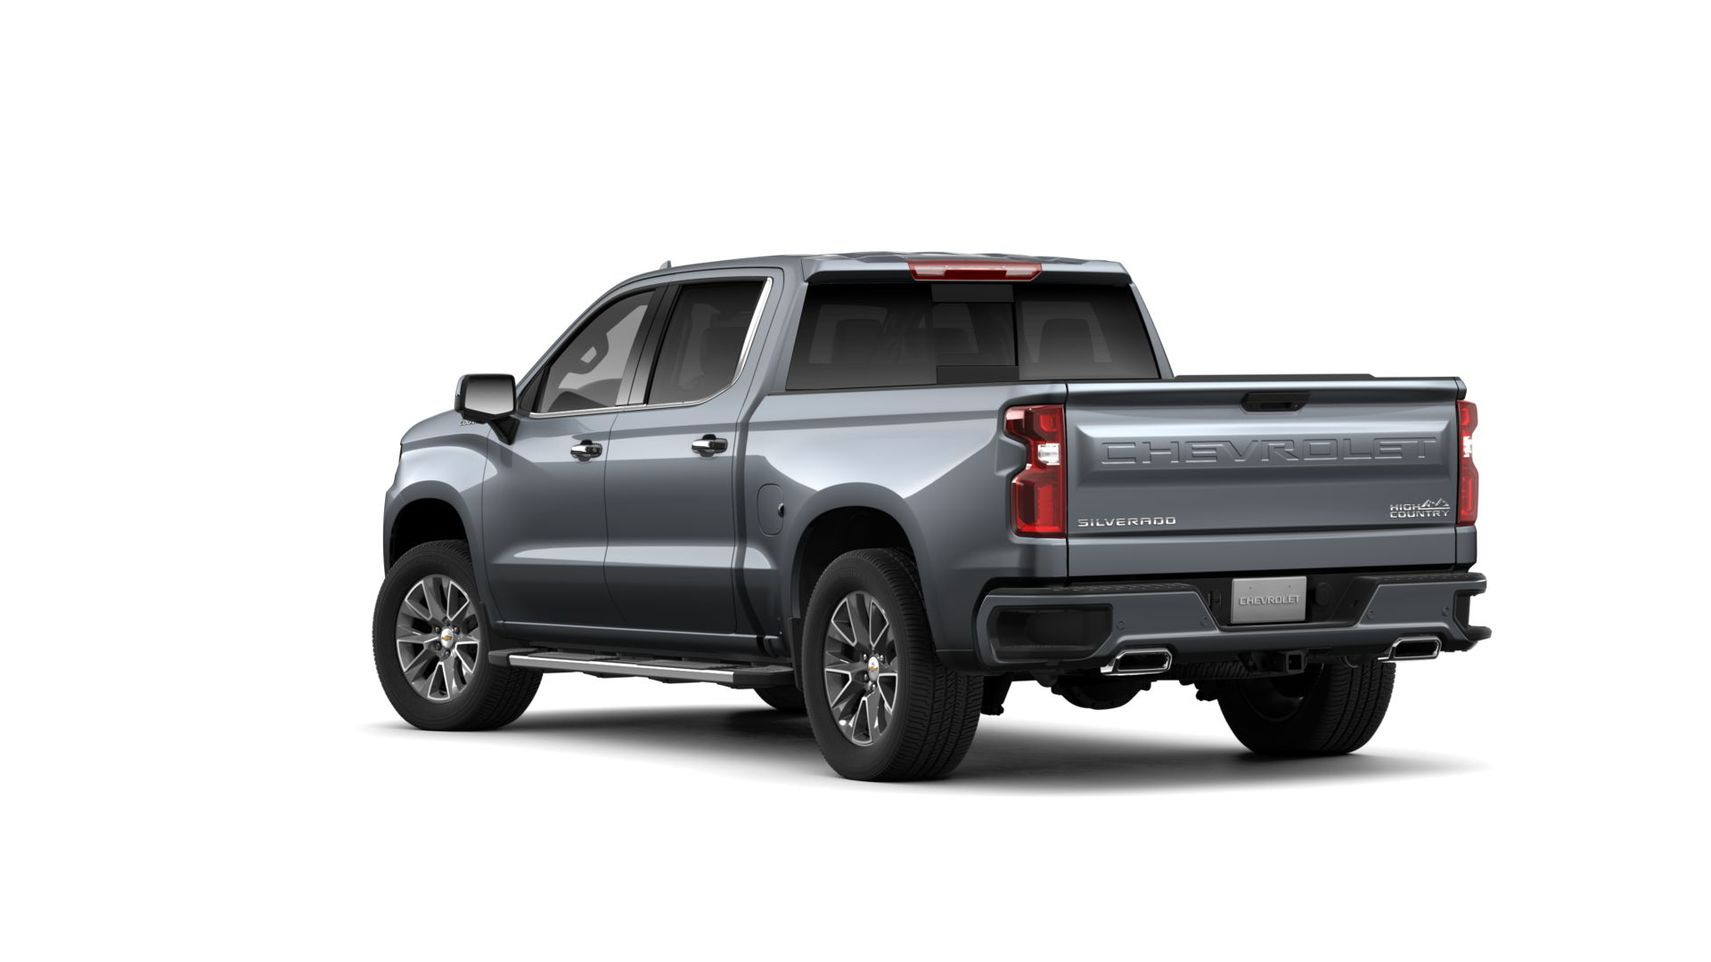 Chevrolet Silverado 1500 2020 High Country